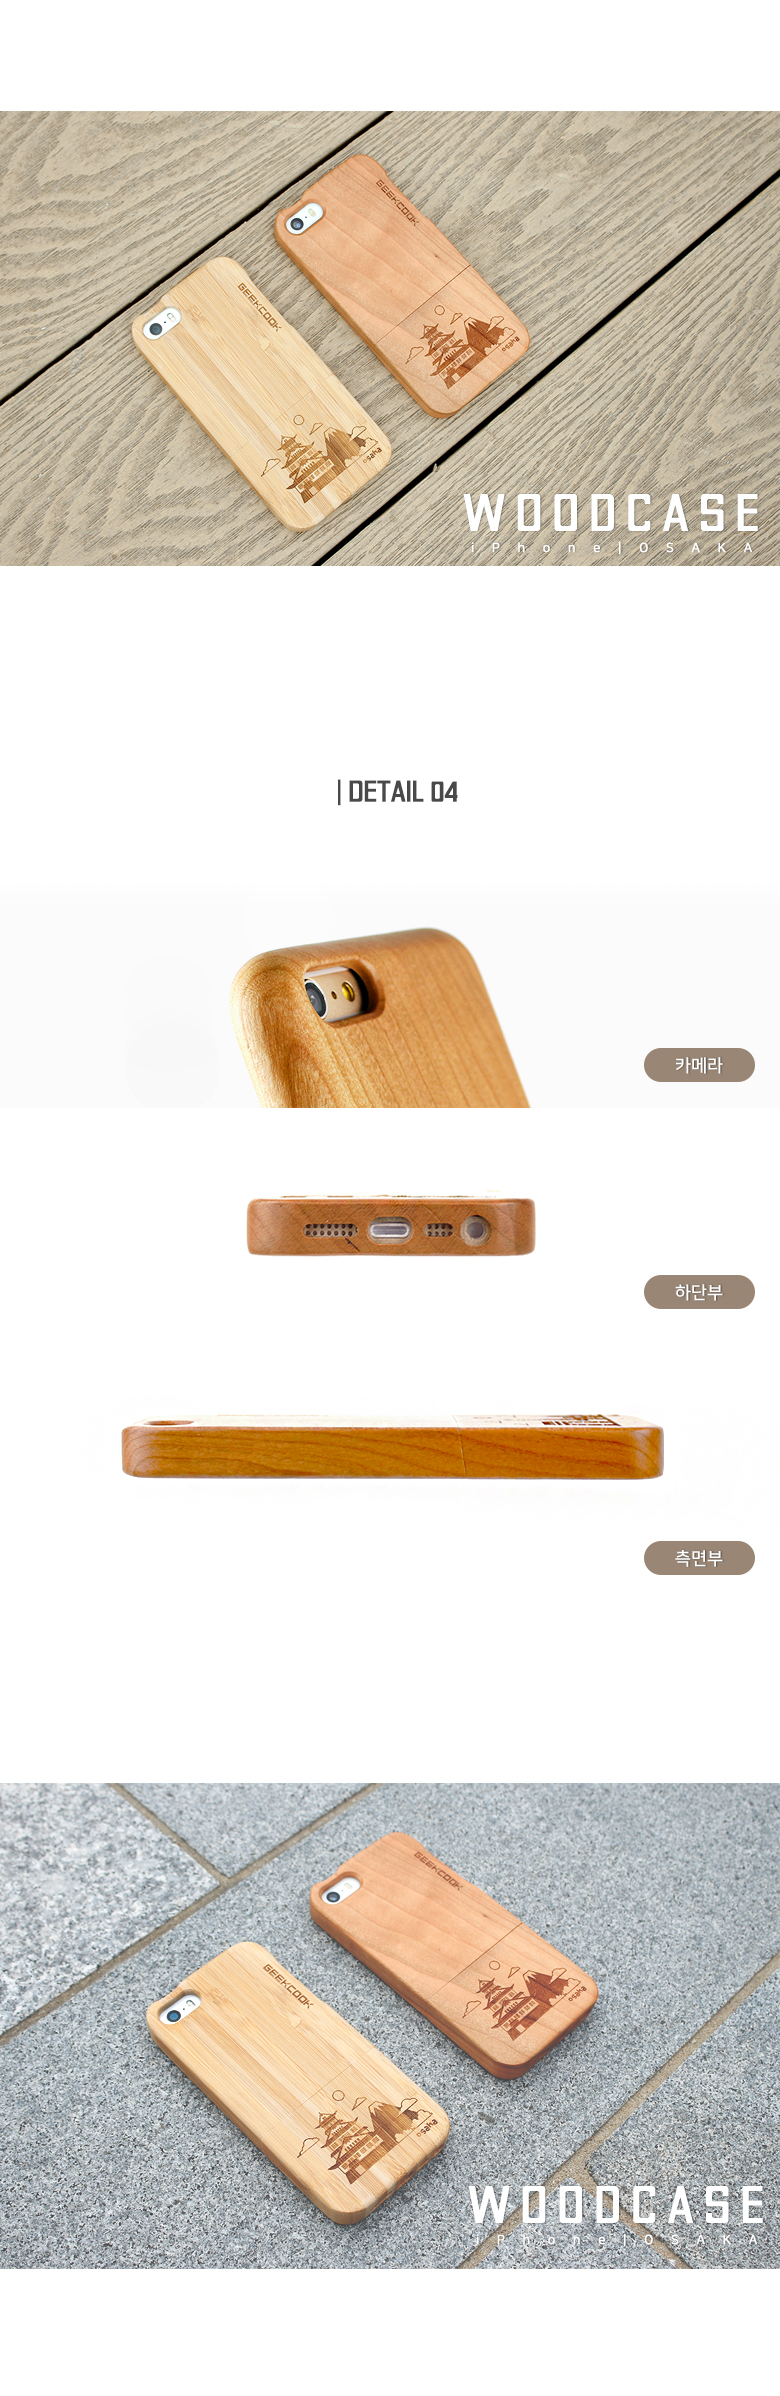 [ BISKET ] iPhone 5/5s/5se Landmark Wood Case Osacar